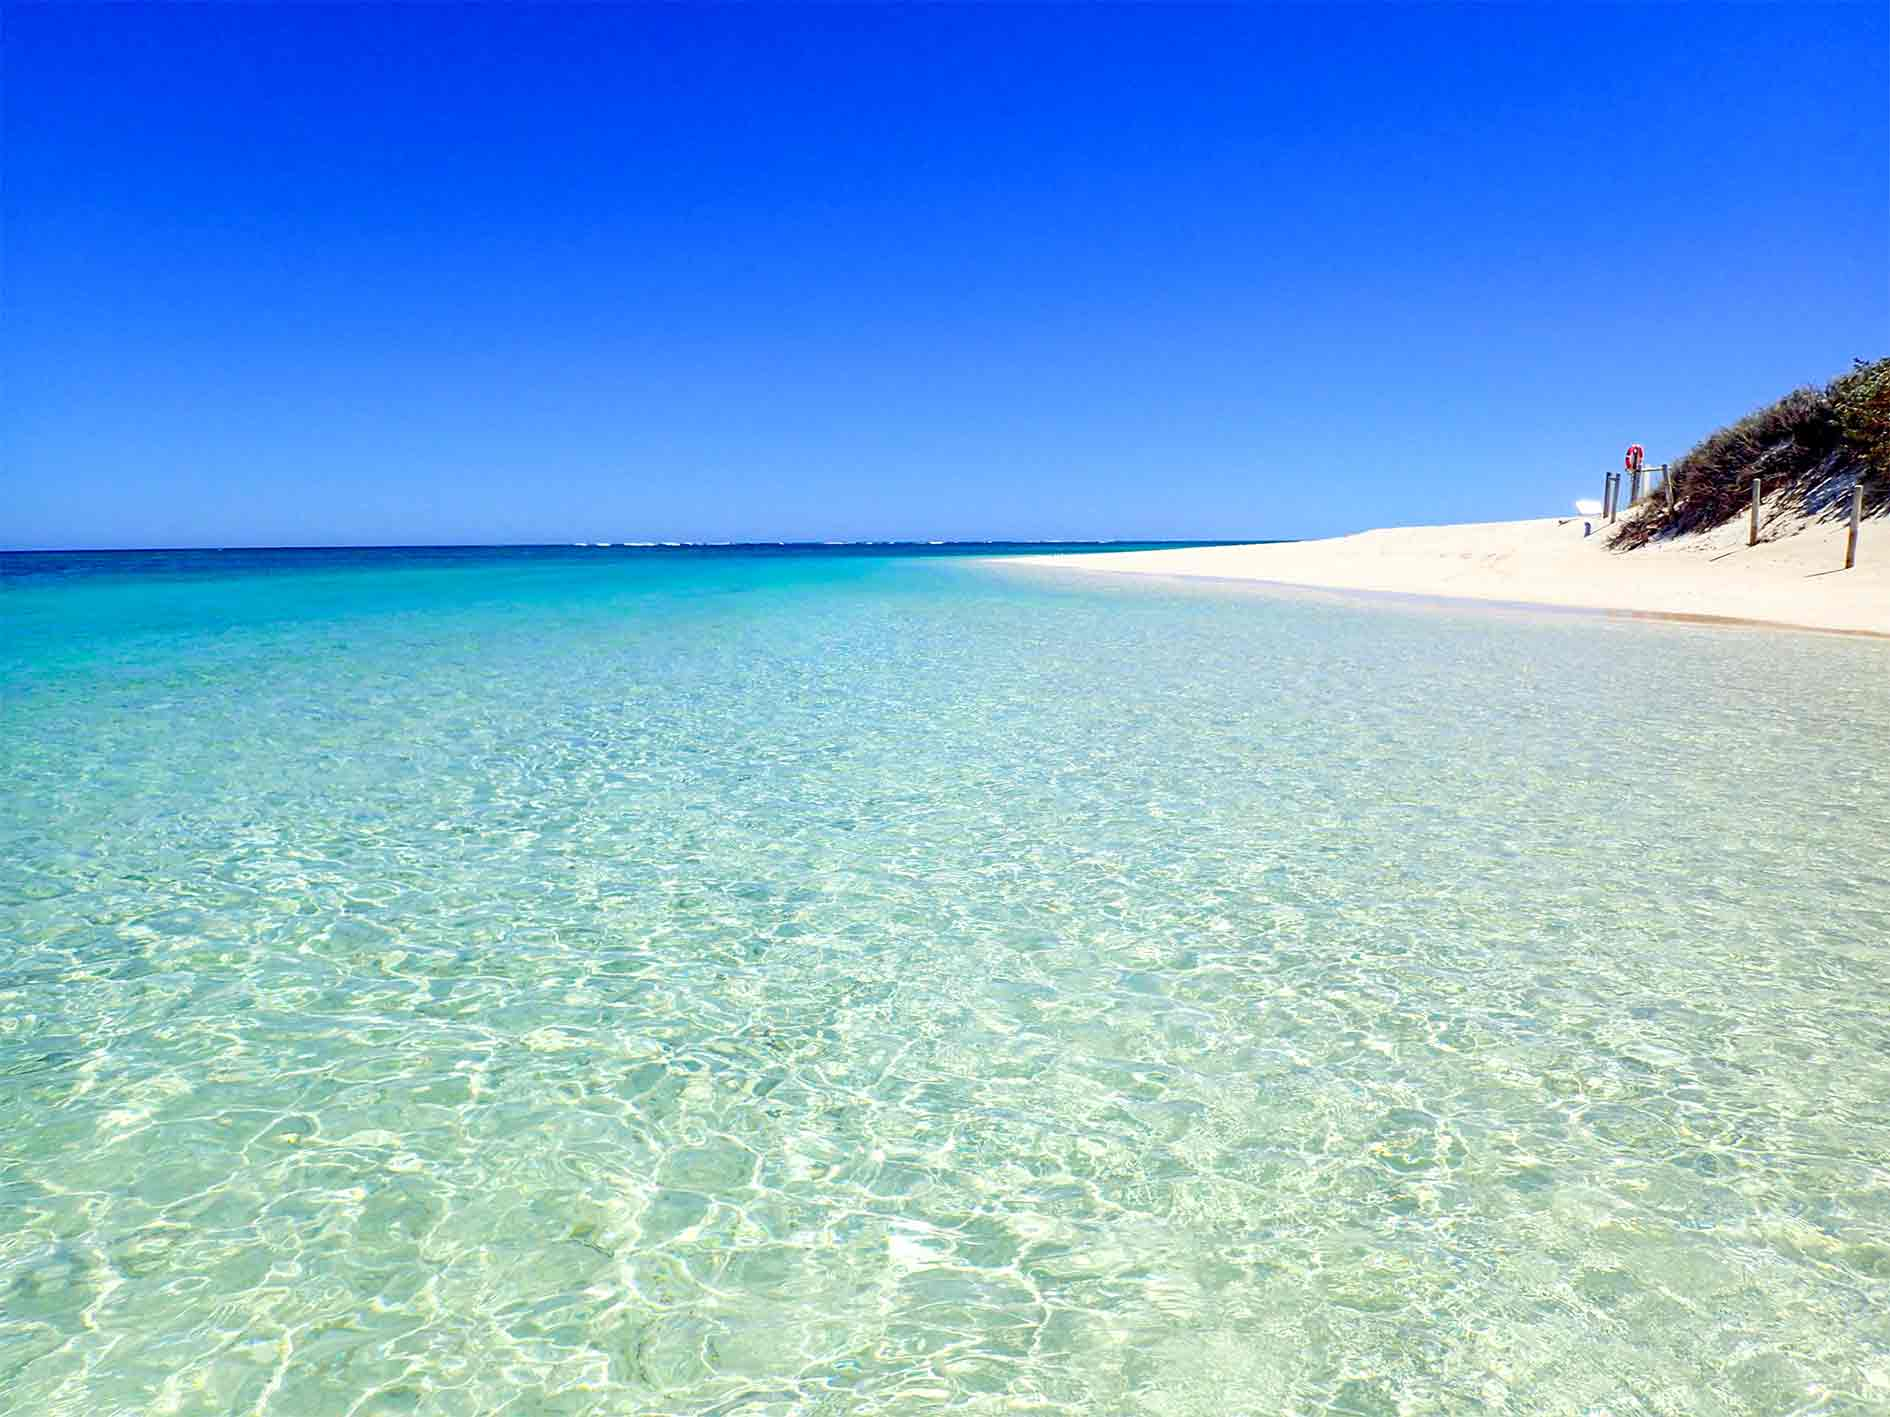 Clear turquoise water and white sand on the Turquoise Bay drift